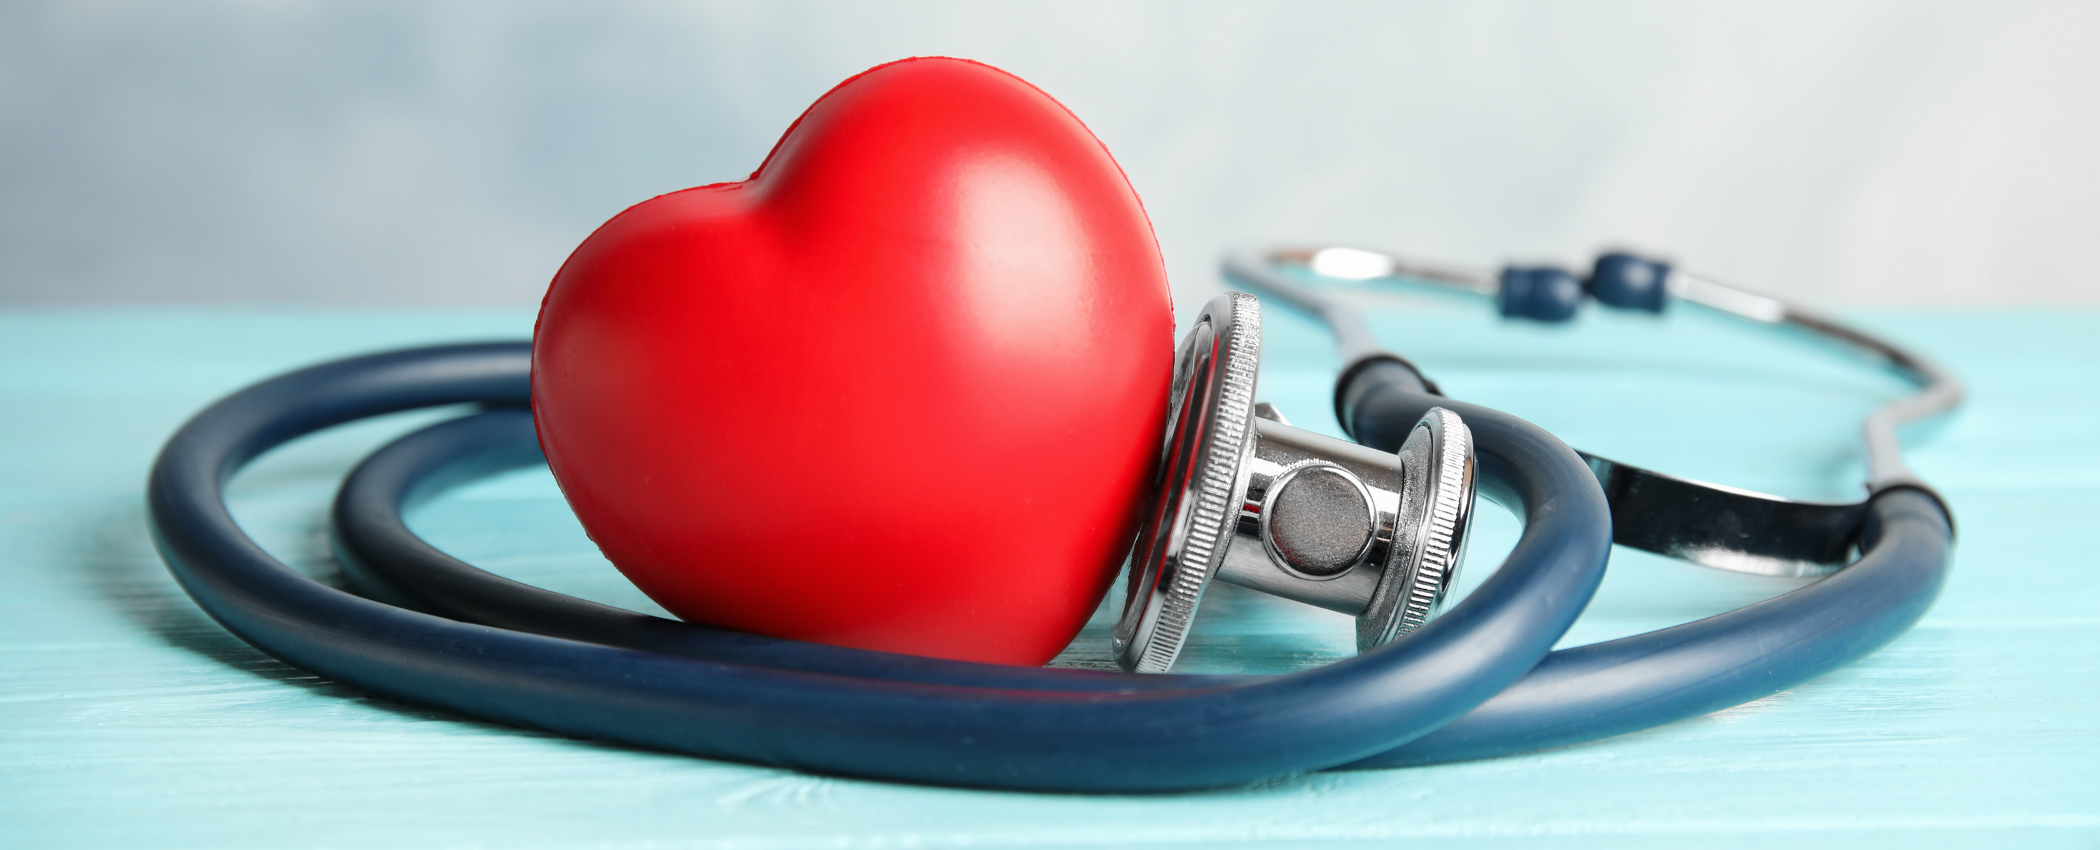 Heart Foundation releases recommendations on coronary artery calcium scoring